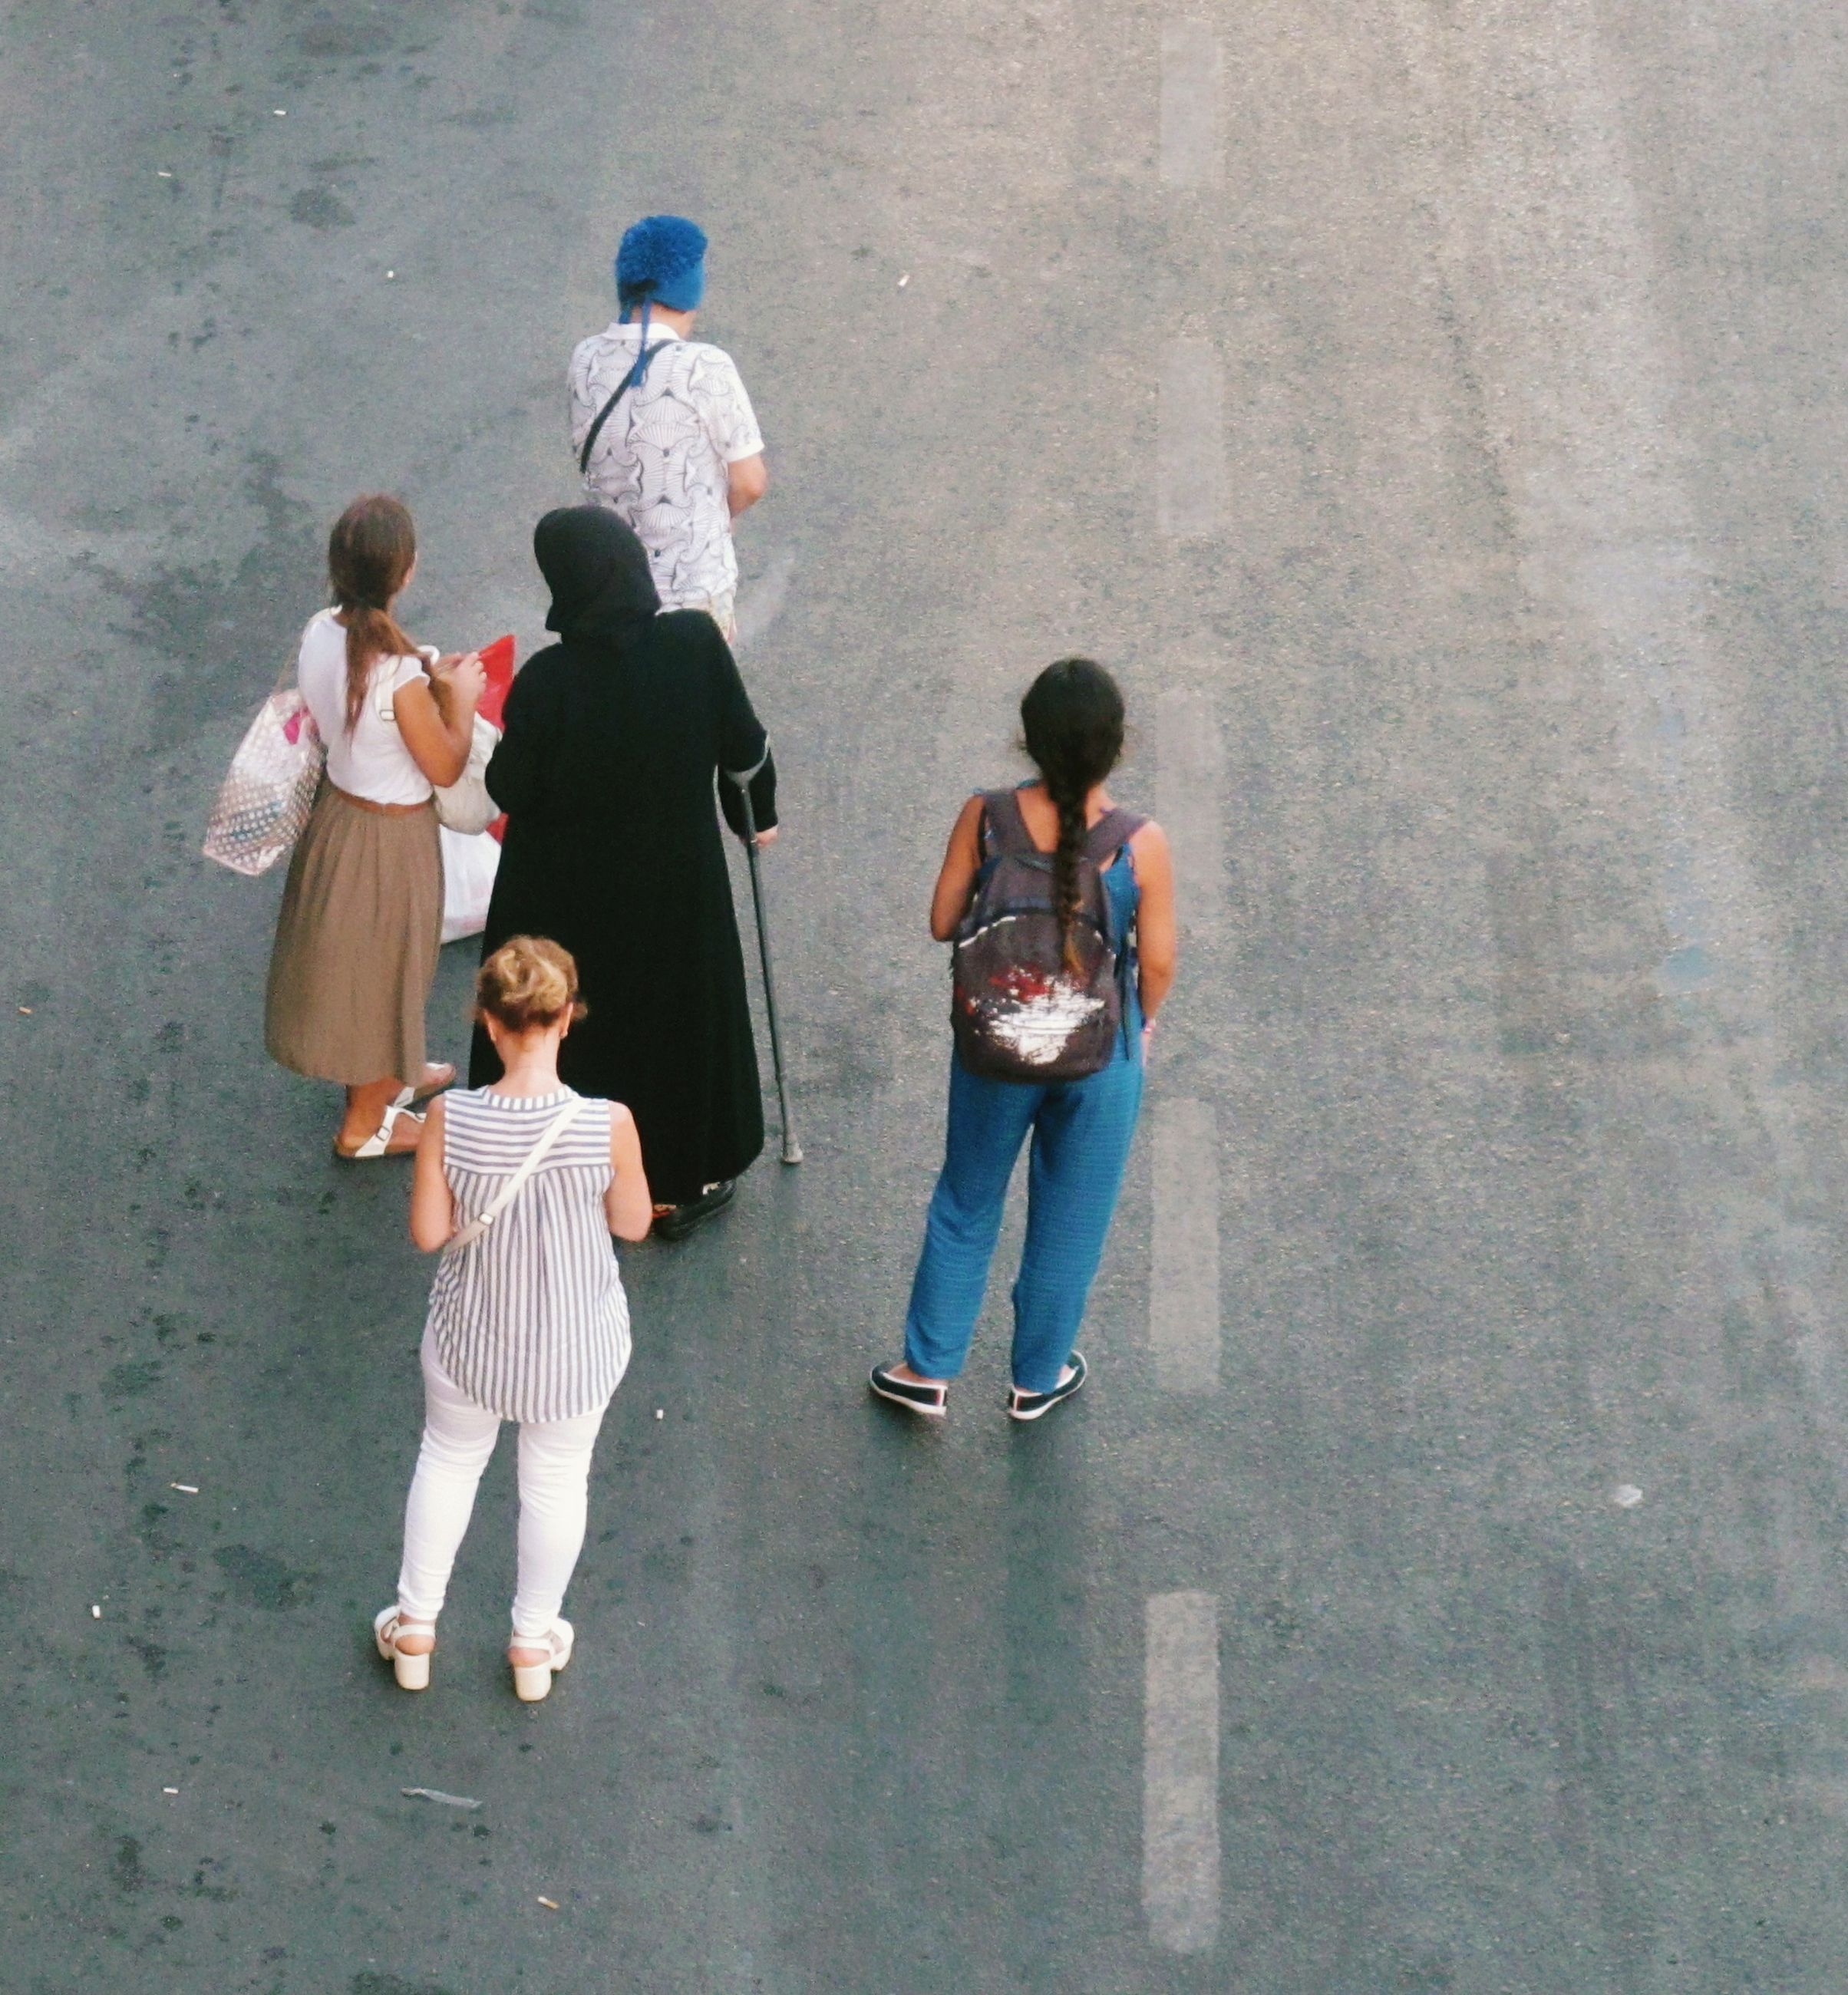 HIGH ANGLE VIEW OF PEOPLE STANDING ON THE FLOOR